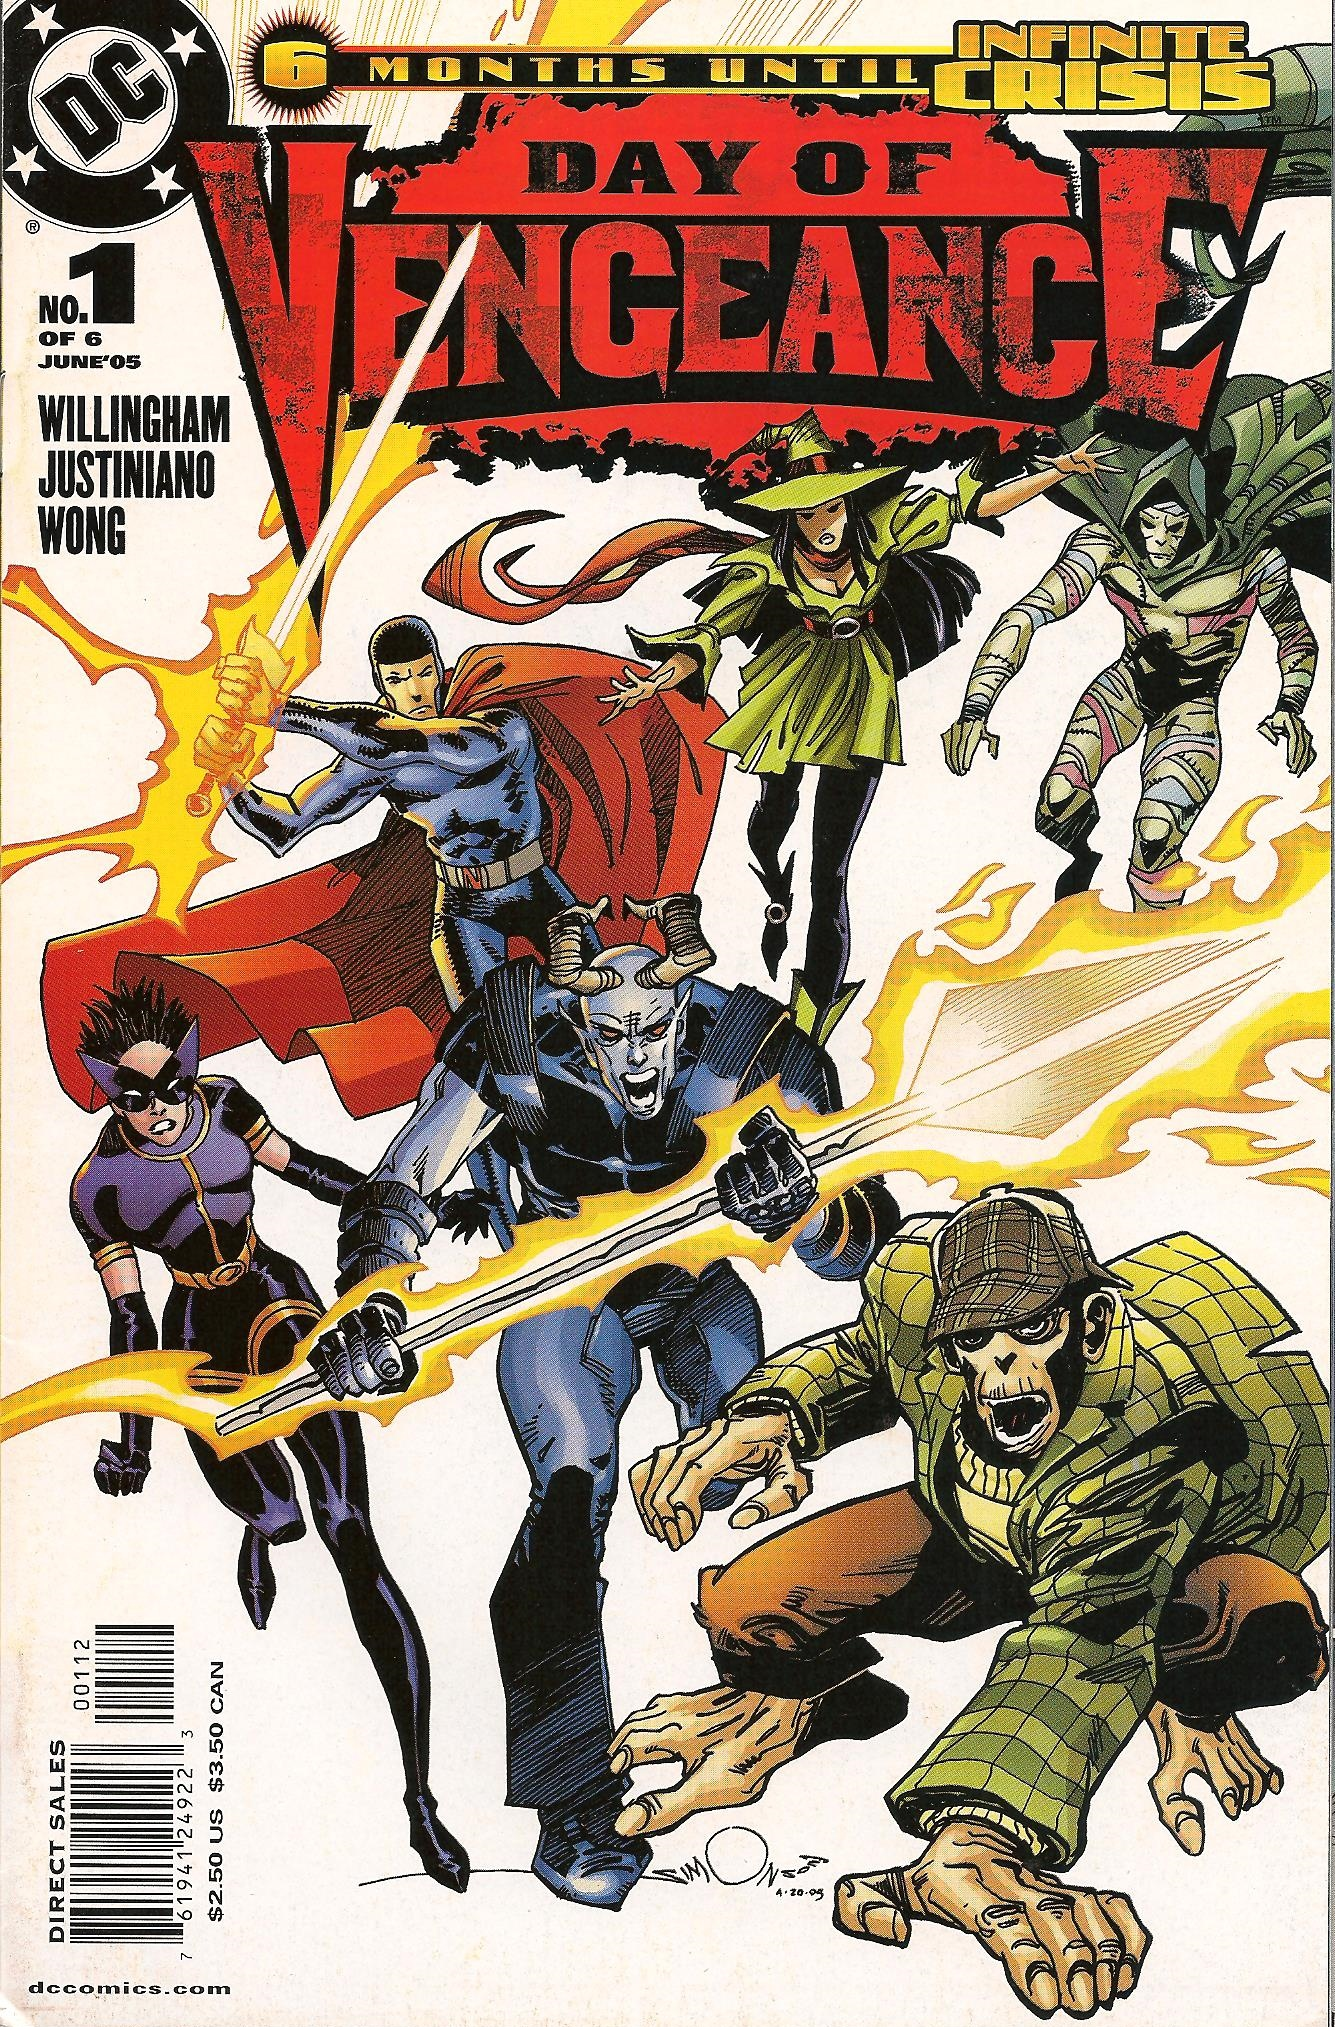 We Have Now Reach Comic Number 9 Of My 25 Part Mystery Series With 2005s Day Vengeance 1